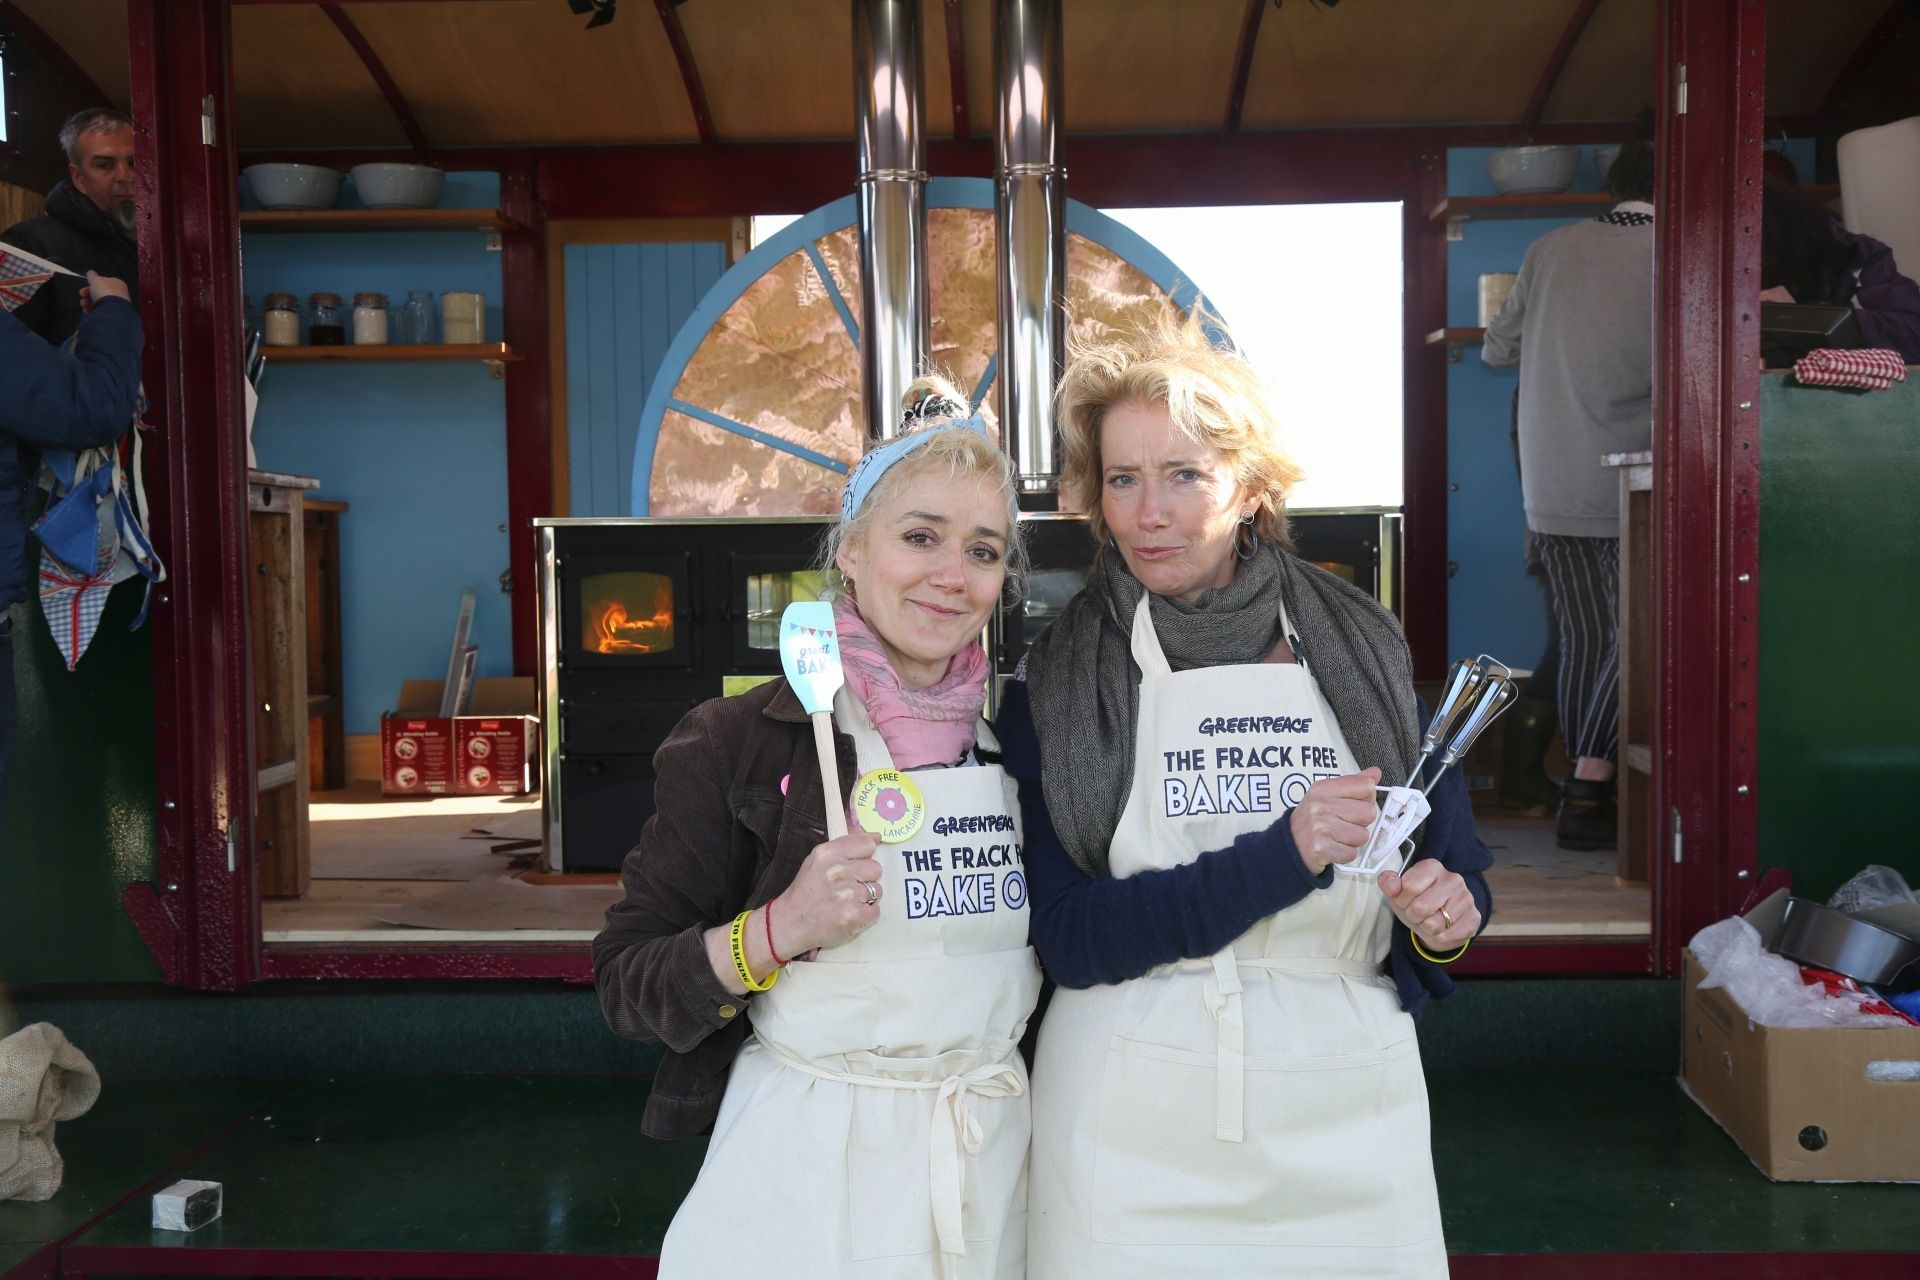 Emma Thompson's Frack Free Bake Off